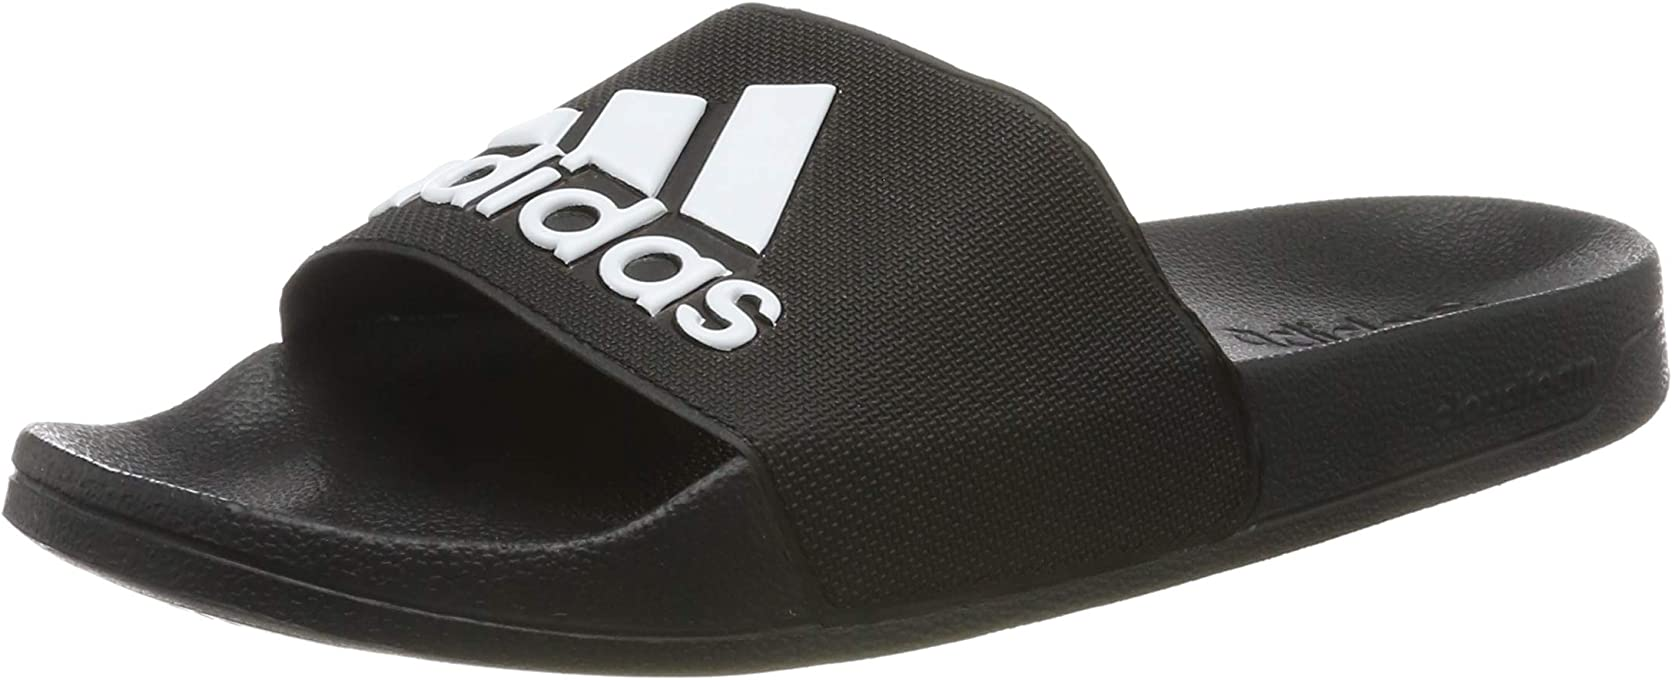 adidas Adilette Shower Men's Slides, Core Black/Footwear White/core Black